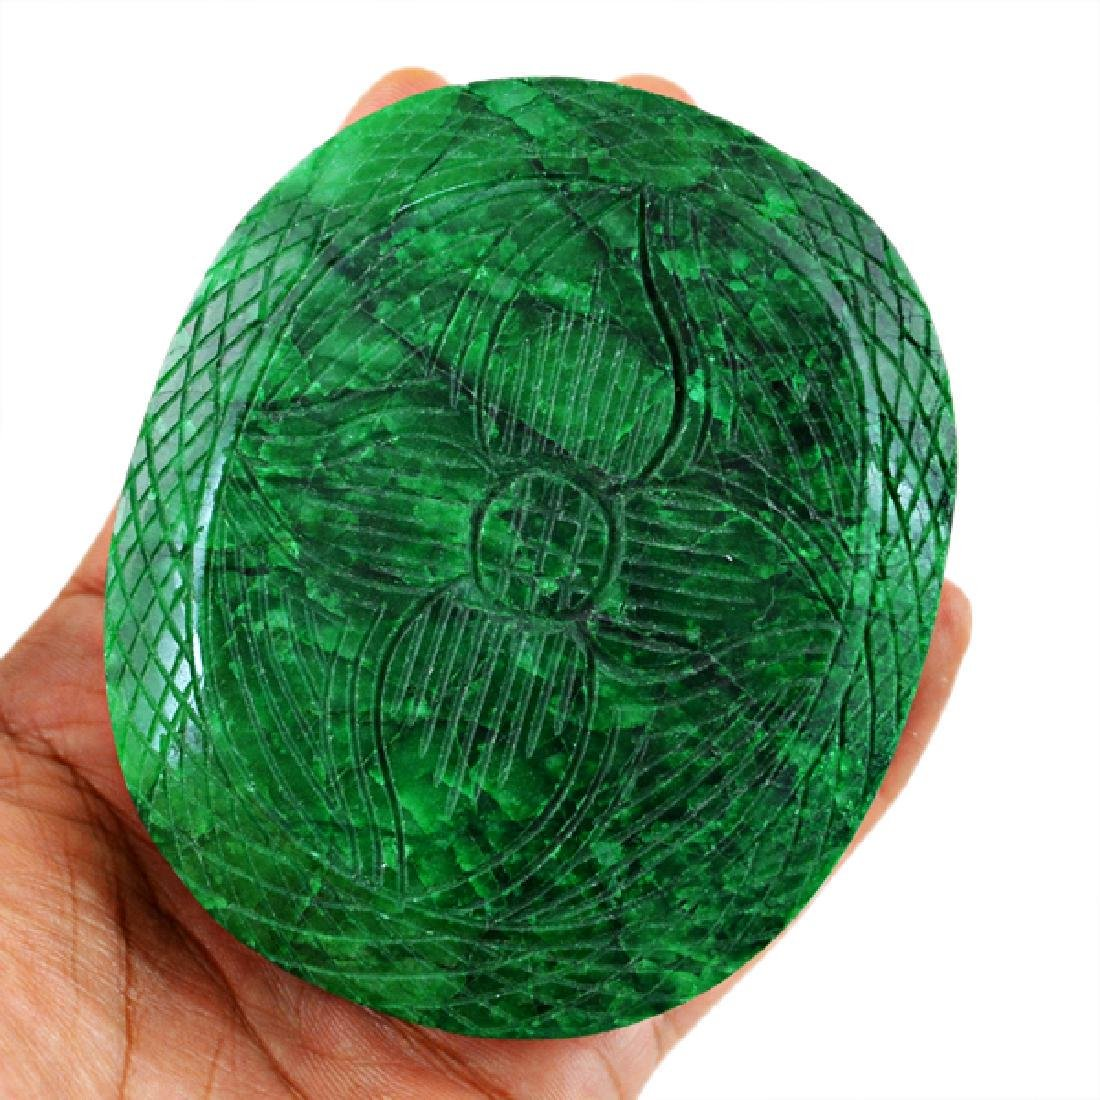 Green Emerald Carved Cabochon - 2